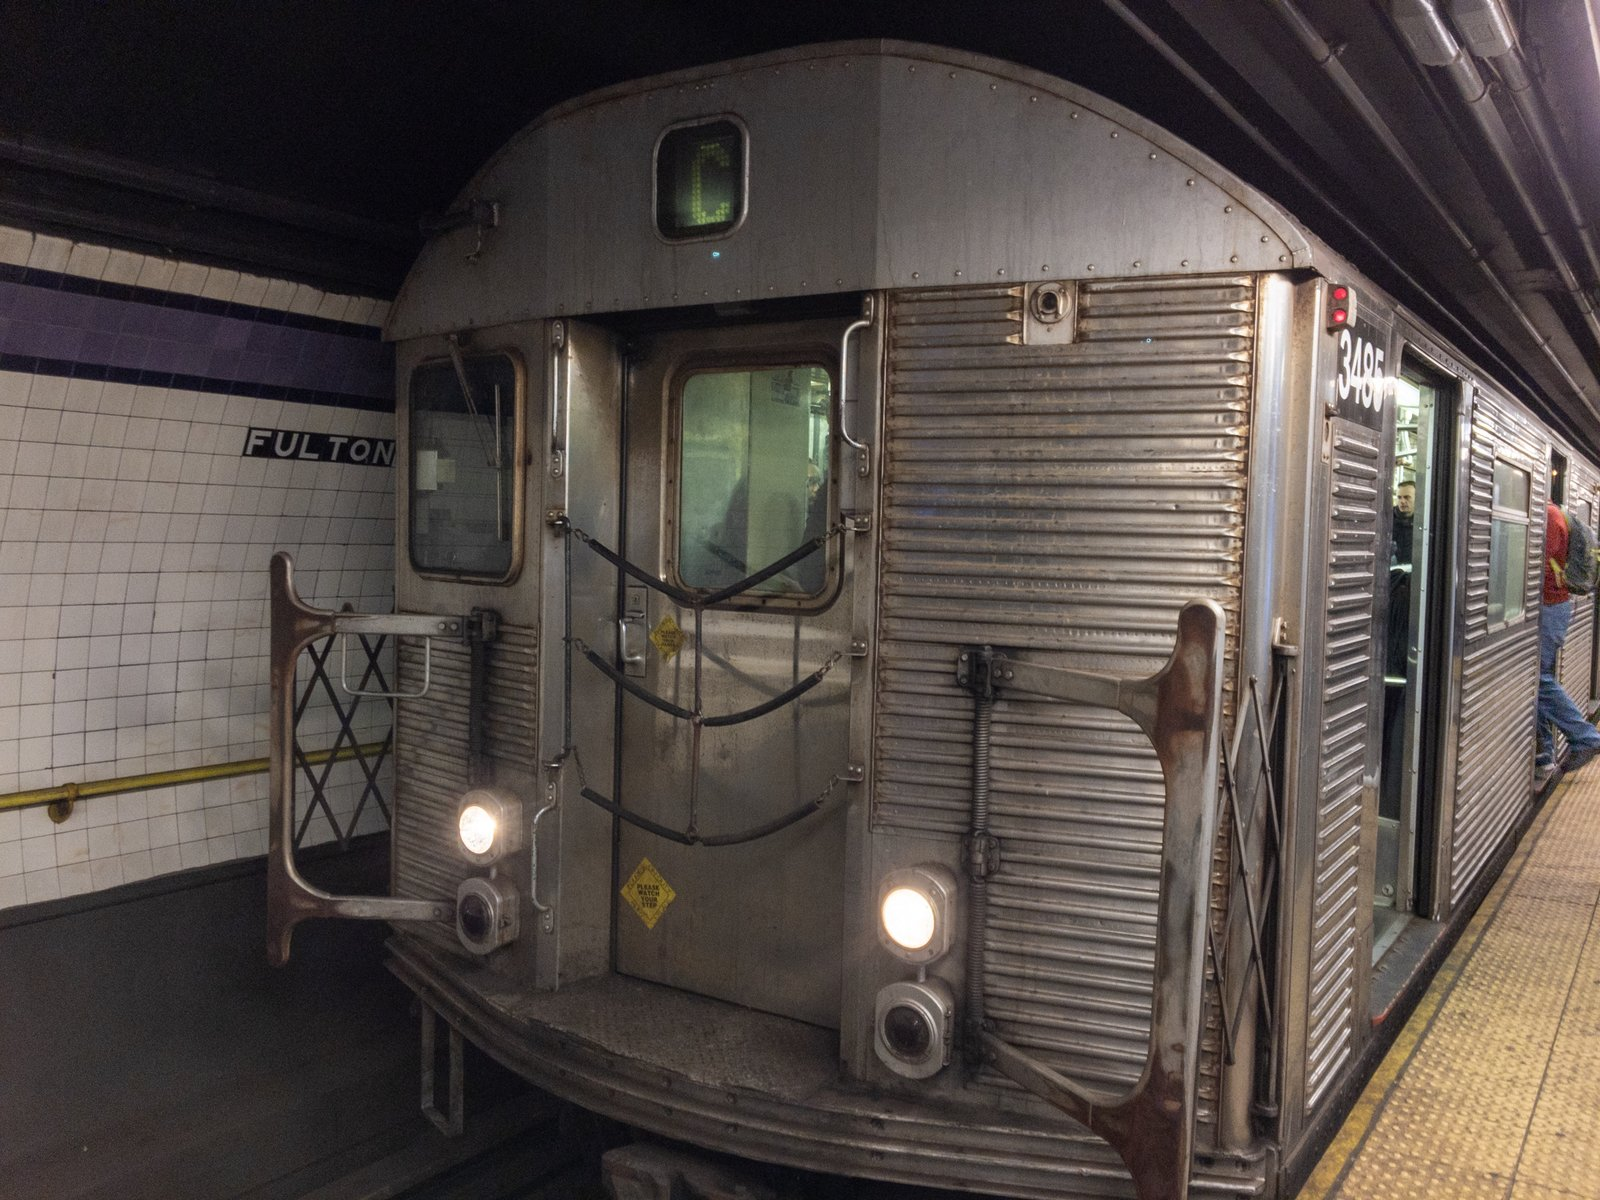 R32 C train at Fulton Street